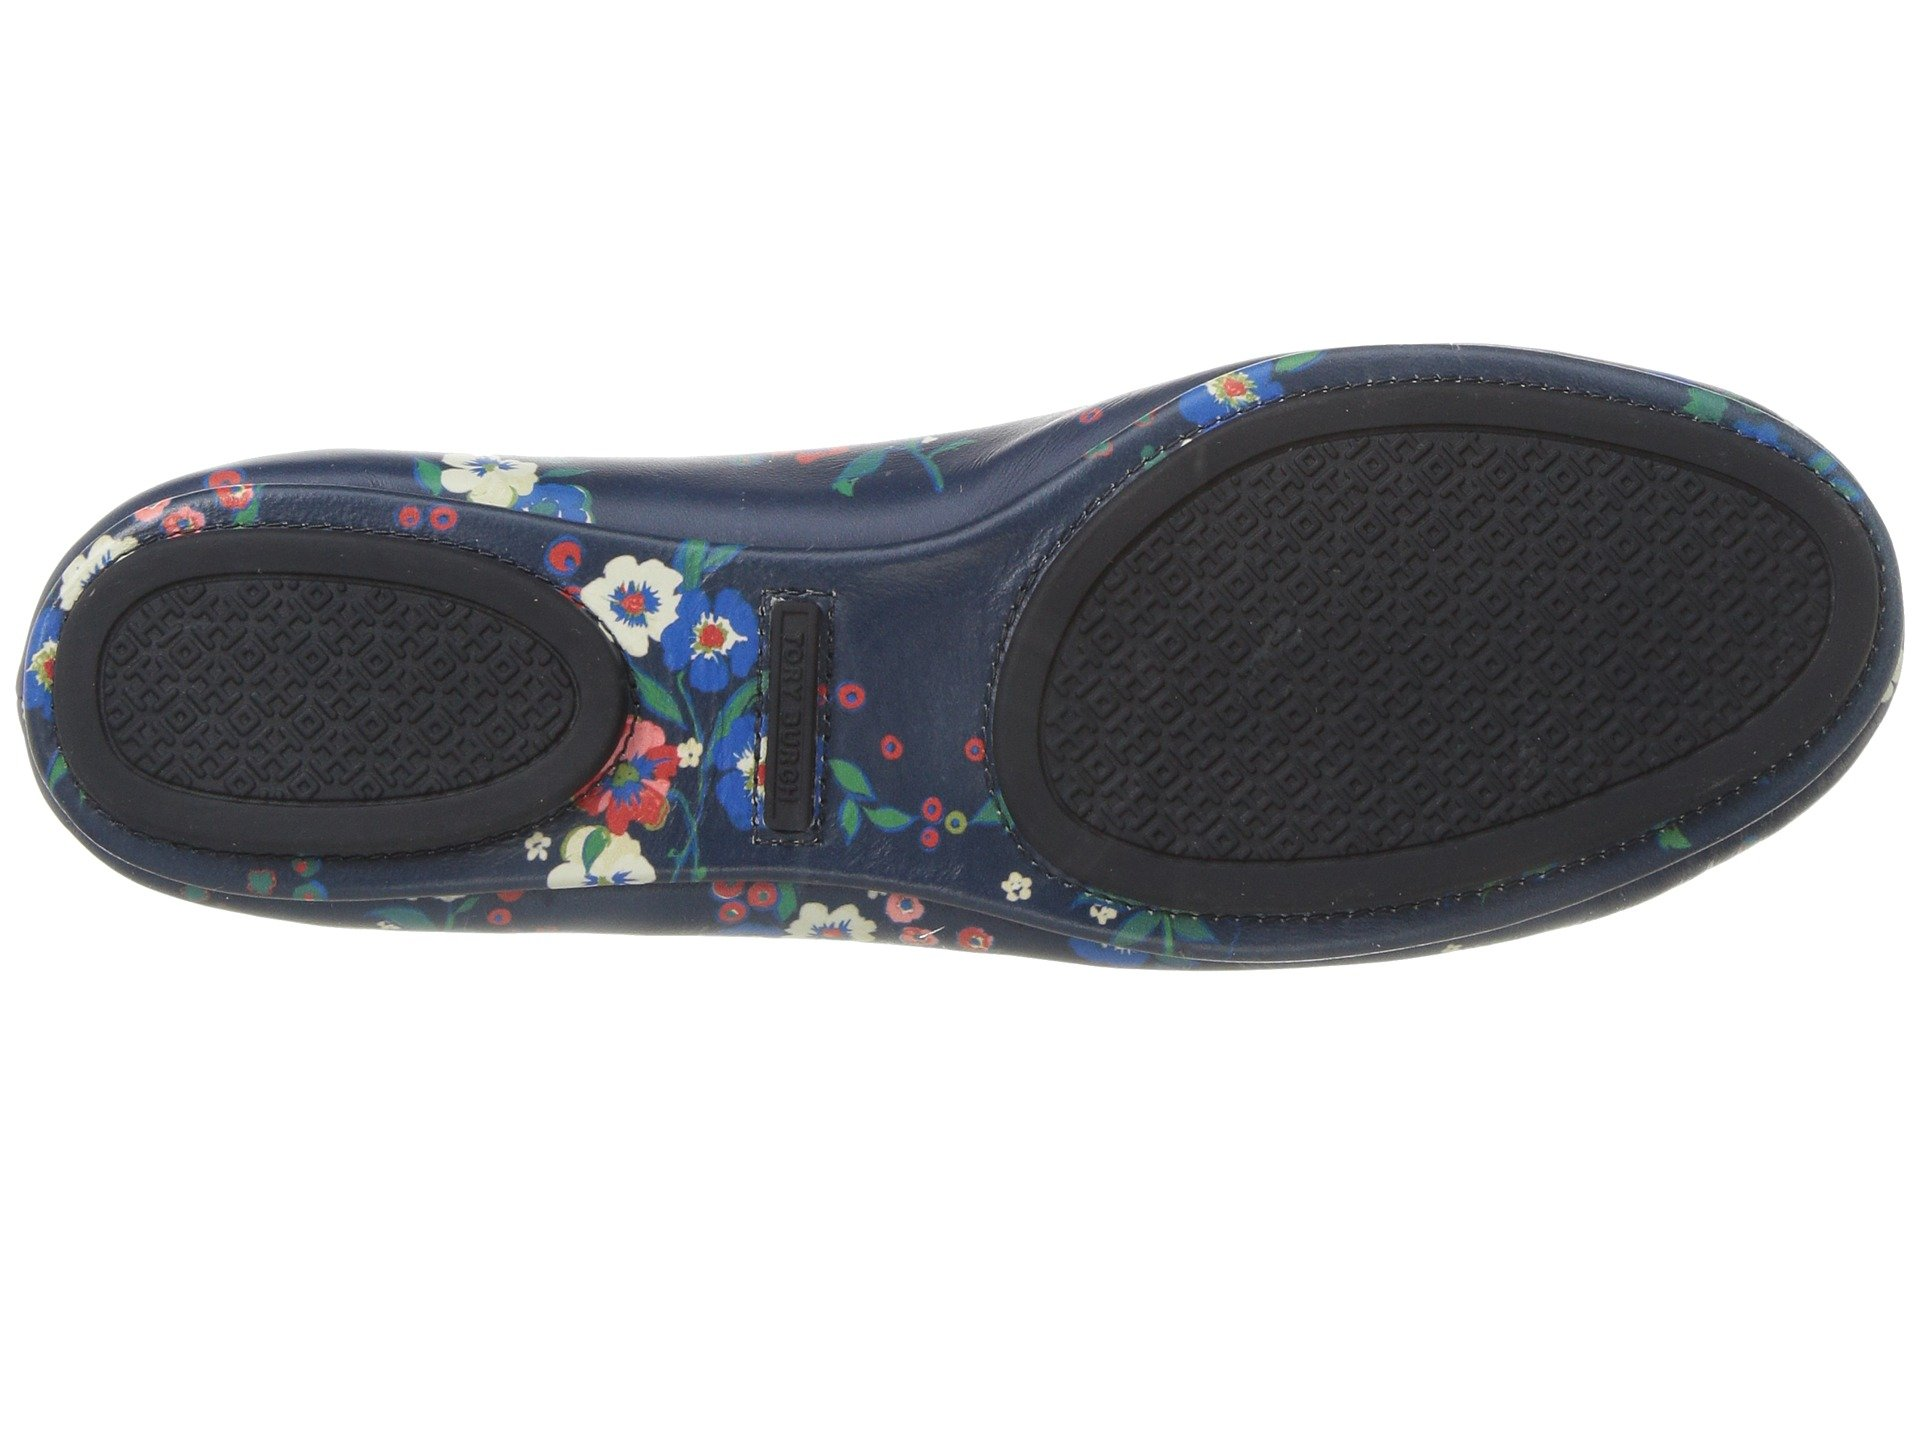 Tory Burch Minnie Travel Floral Print Lether Ballet Flat Size 8 by Tory Burch (Image #4)